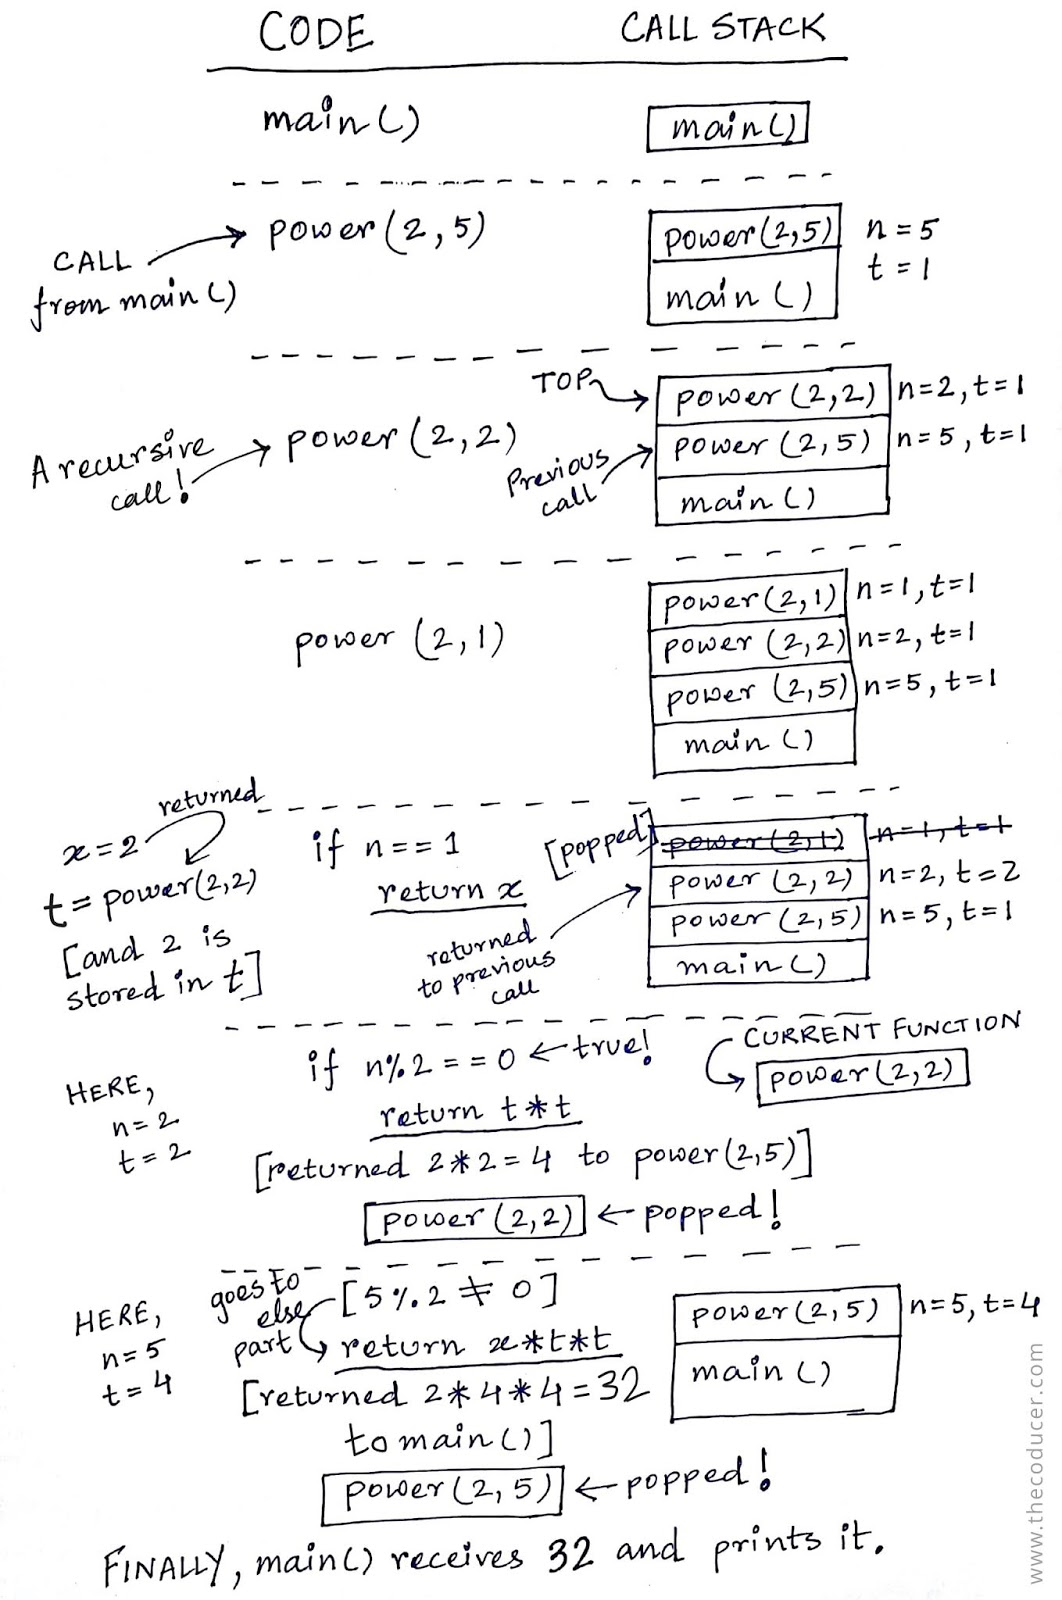 illustration of working of recursion